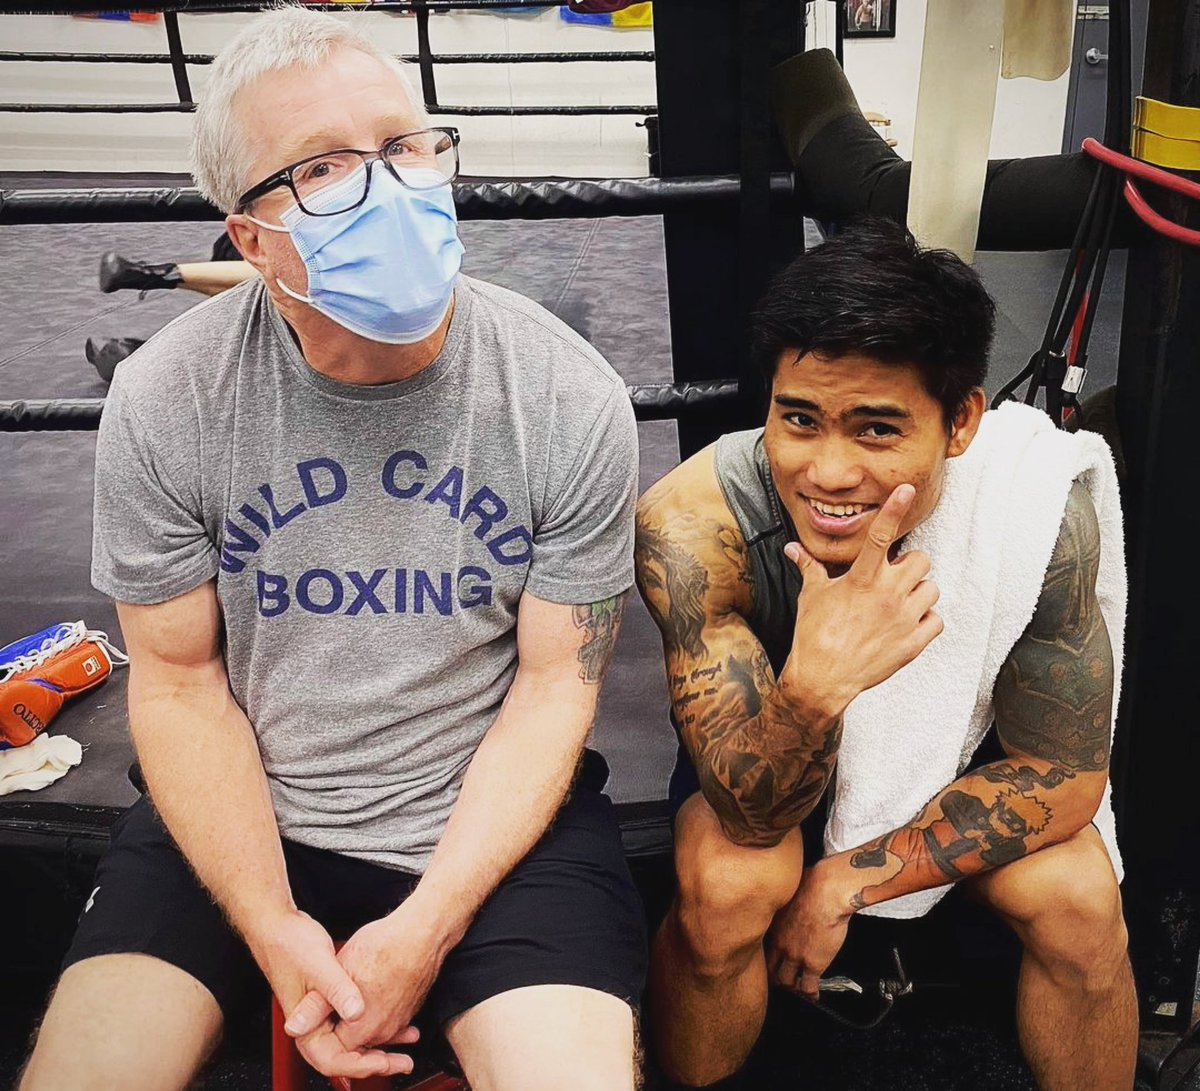 Camp is almost done for @markmagsayo_MMM See you at the Mohegan Sun Casino in CT on @ShowtimeBoxing on April 10th #TeamMMM @WildCardBoxing1 @MannyPacquiao @KnuckleheadSean @WCBstore @TGBpromotions @premierboxing #wildcardboxing #boxing #boxer #fighter #Philippines #USA #training https://t.co/psbLPcHEkN